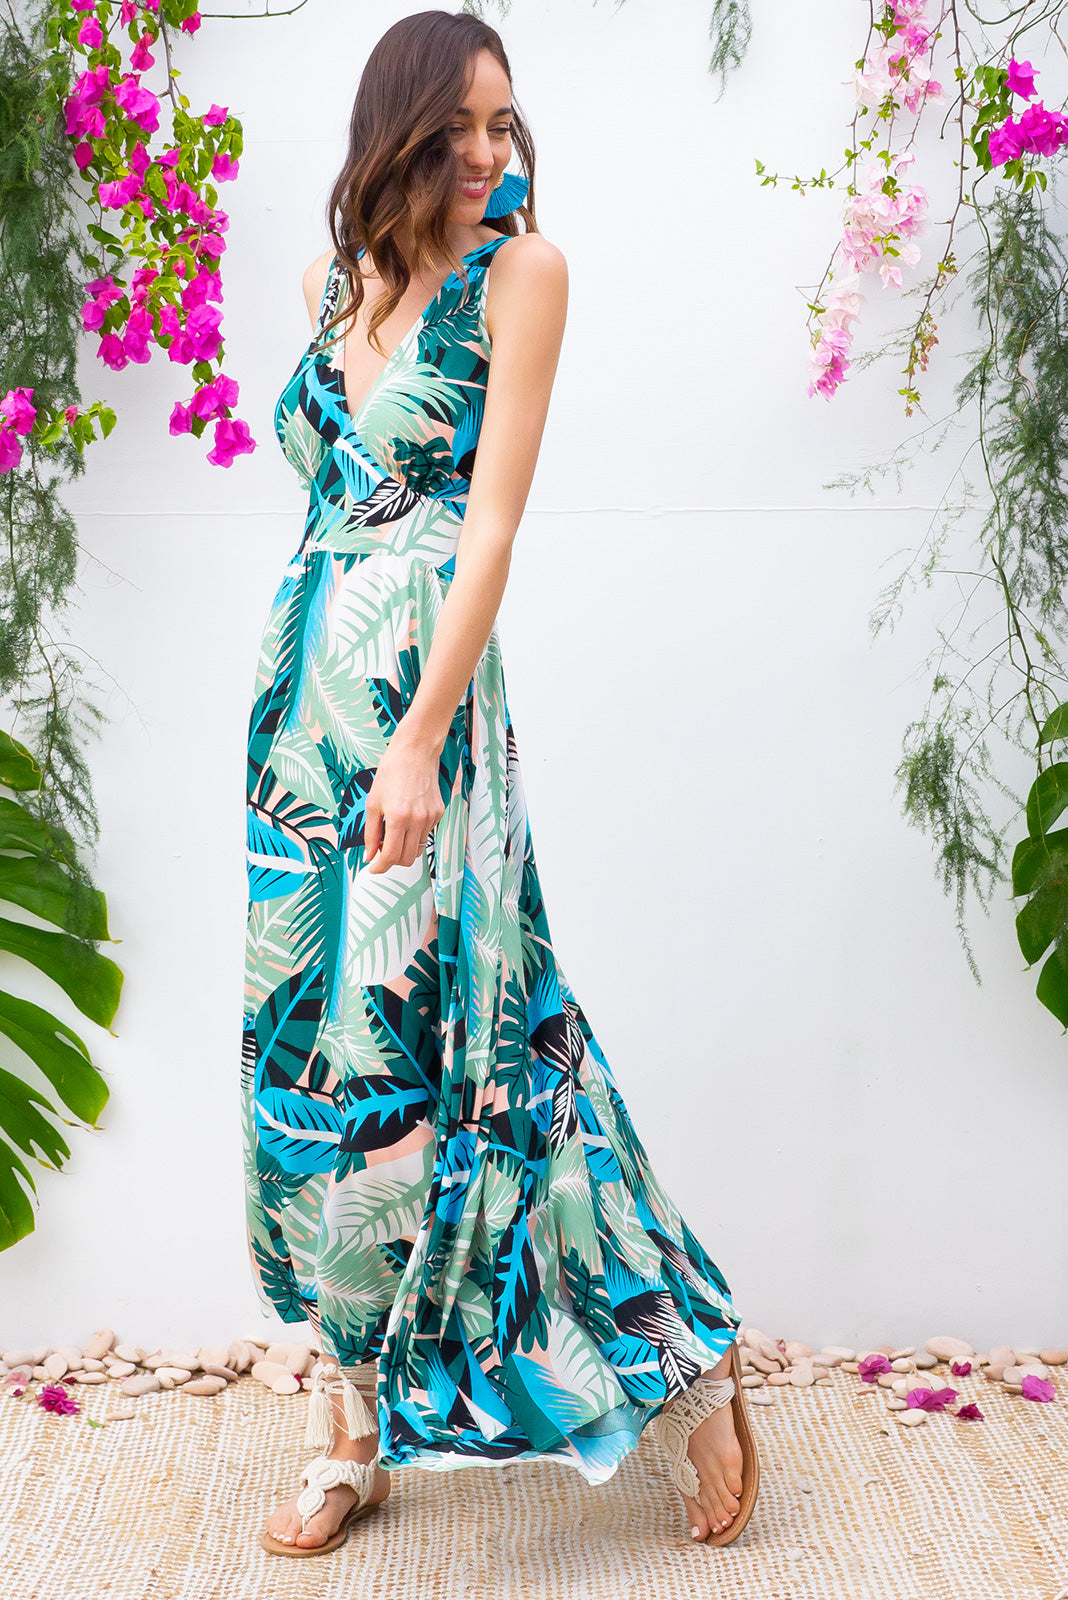 Lola Leafy Green Maxi Dress features a vintage inspired fitted basque waist and elasticated waist with a sleeveless design and deep v neck the fabric is a soft woven rayon in a navy, turquoise and pale green leaf print